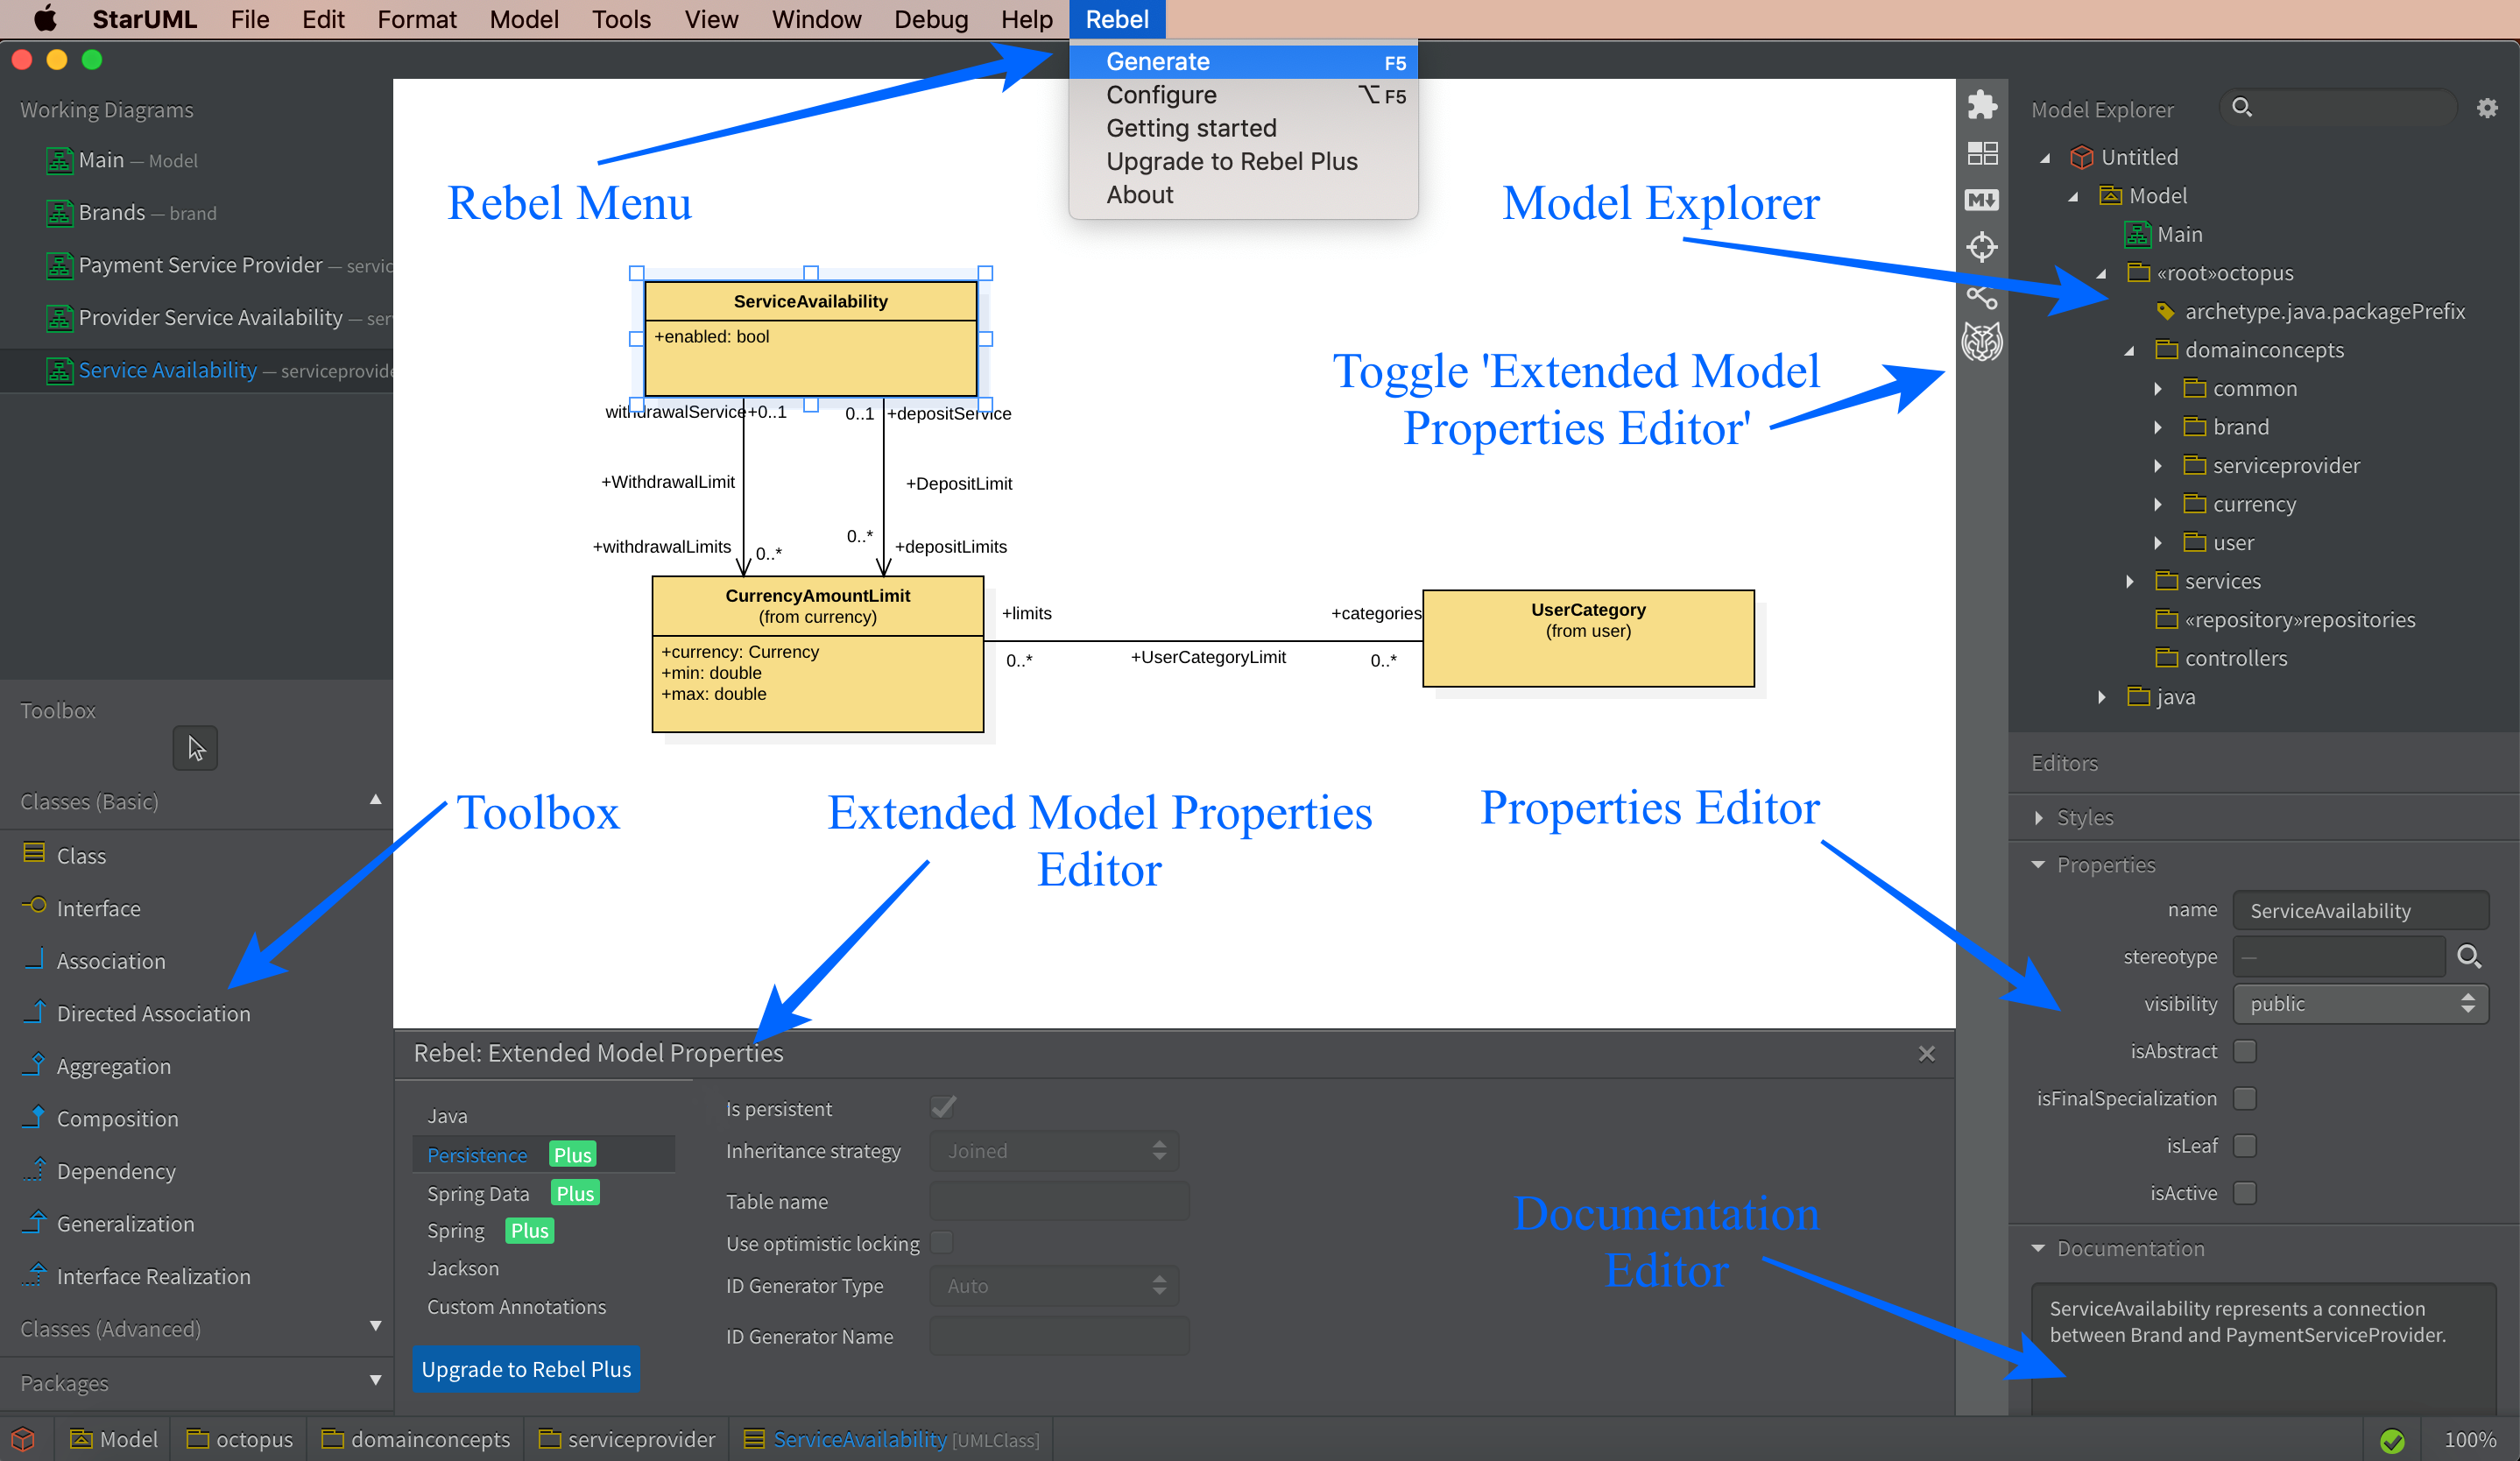 StarUML with Rebel Property Editor